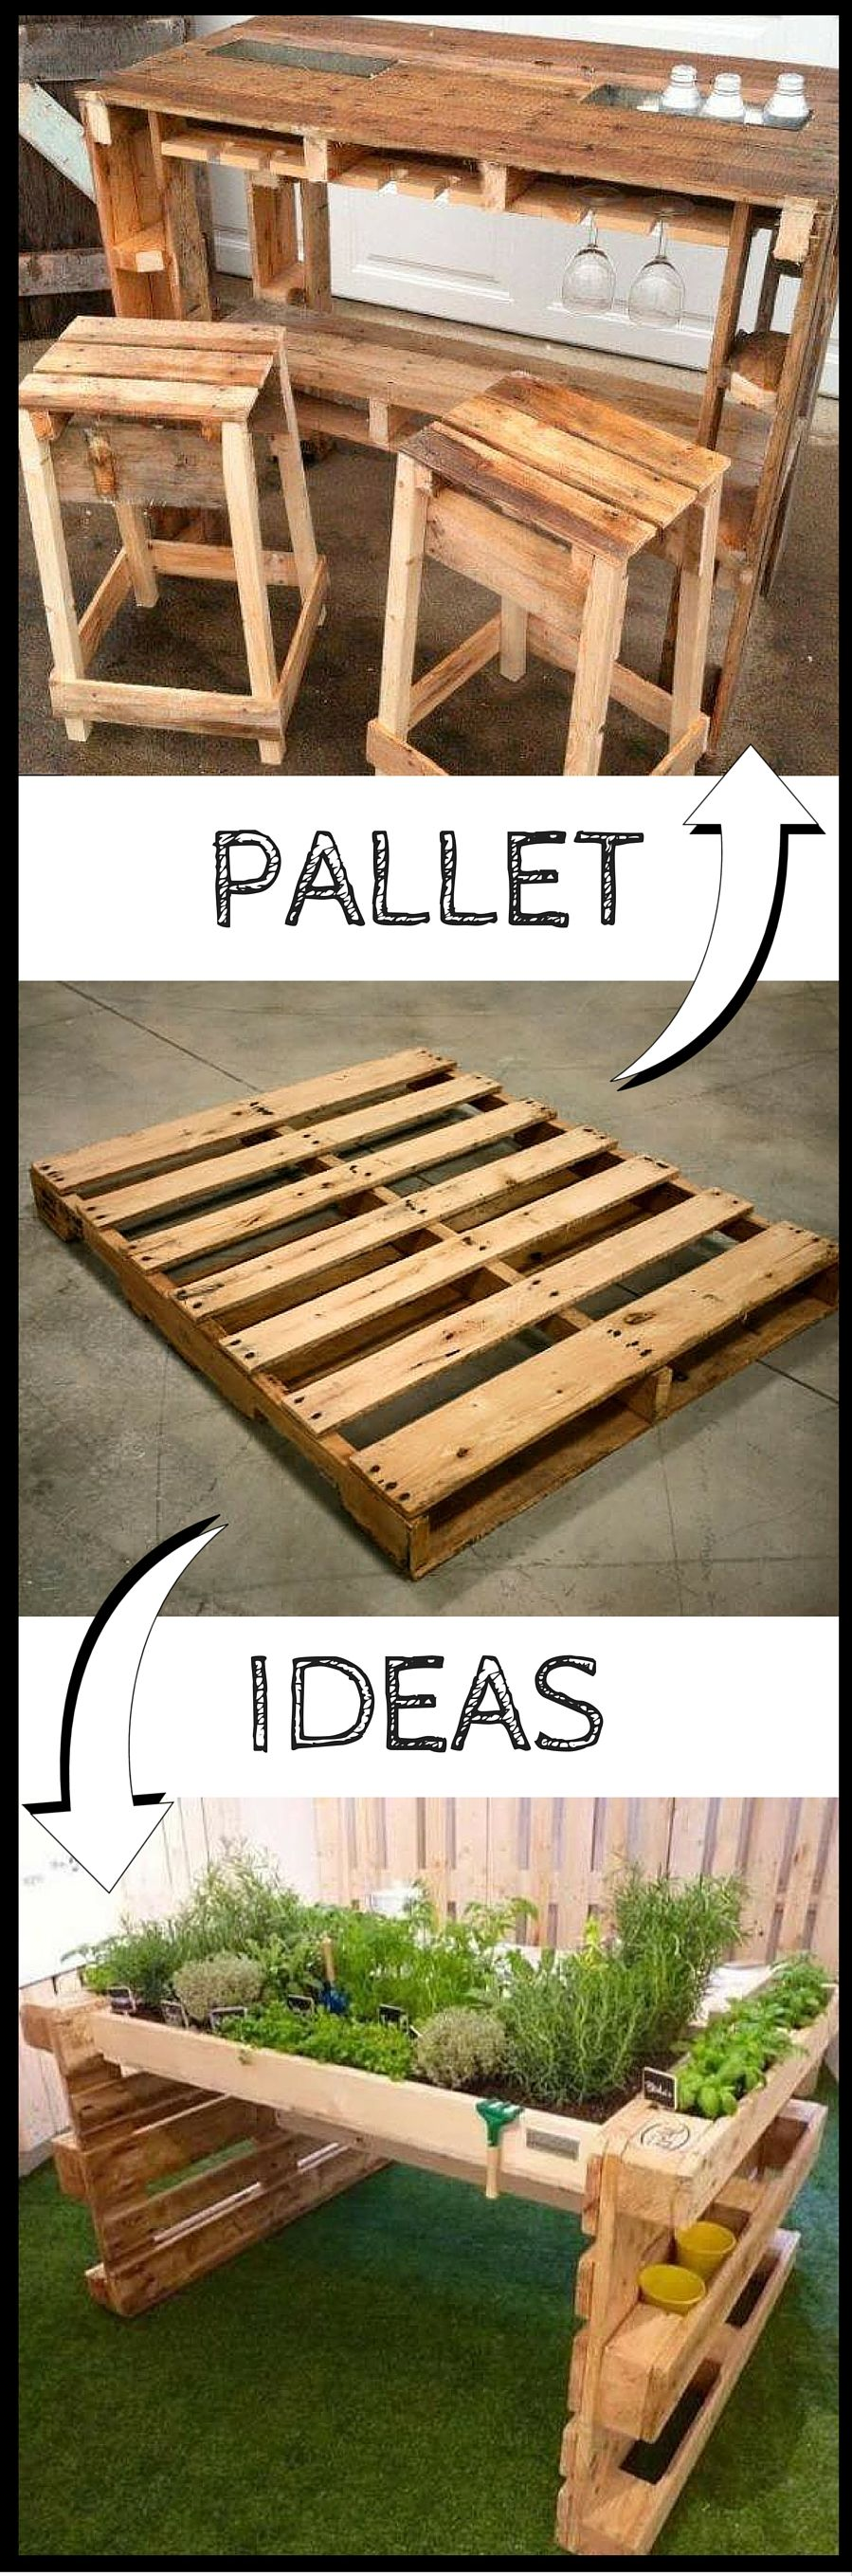 Pin By Brian Lonsbery On Wooden Pallet Beds Pinterest Pallet